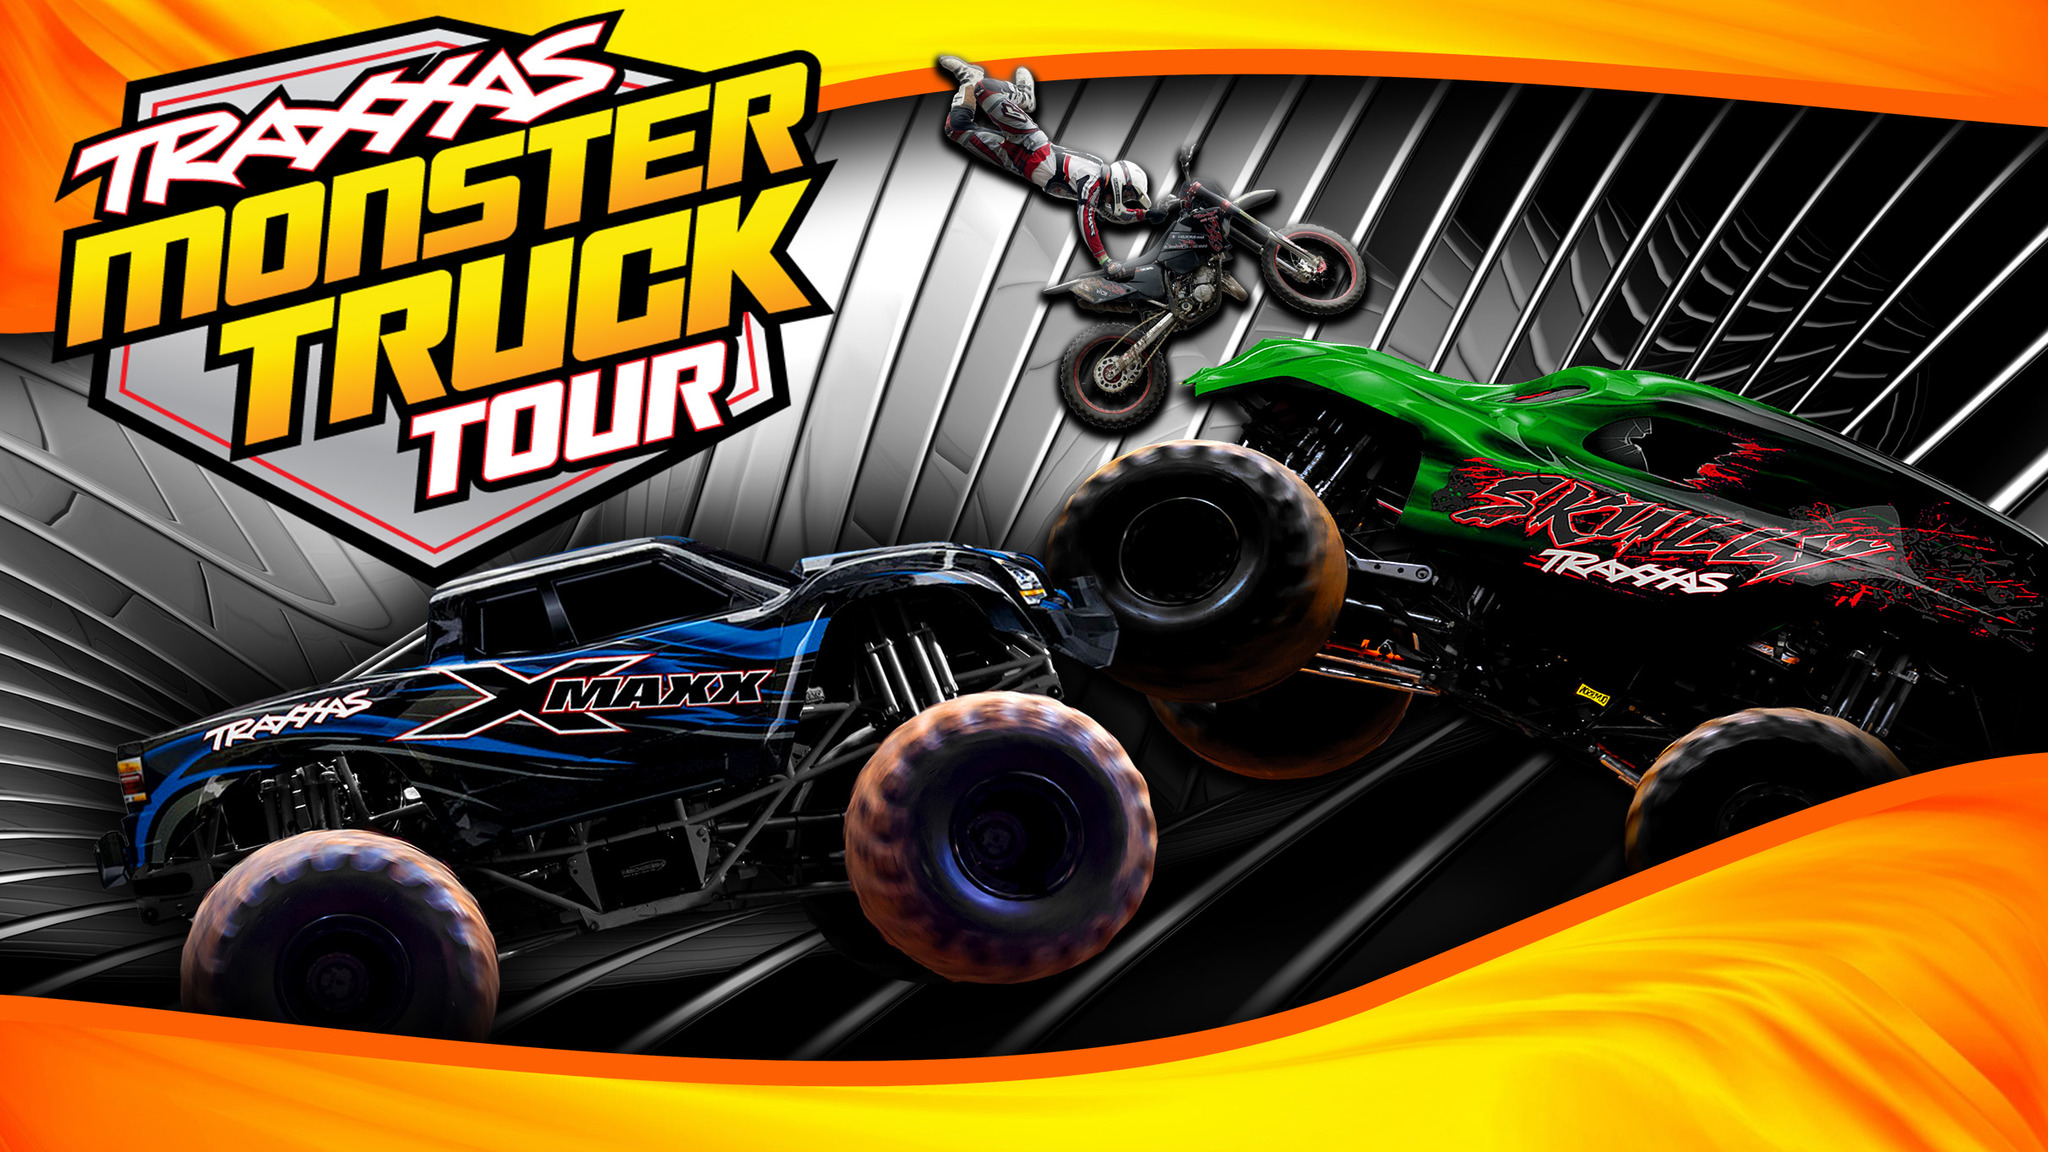 TRAXXAS Monster Truck Tour @ 7:30pm